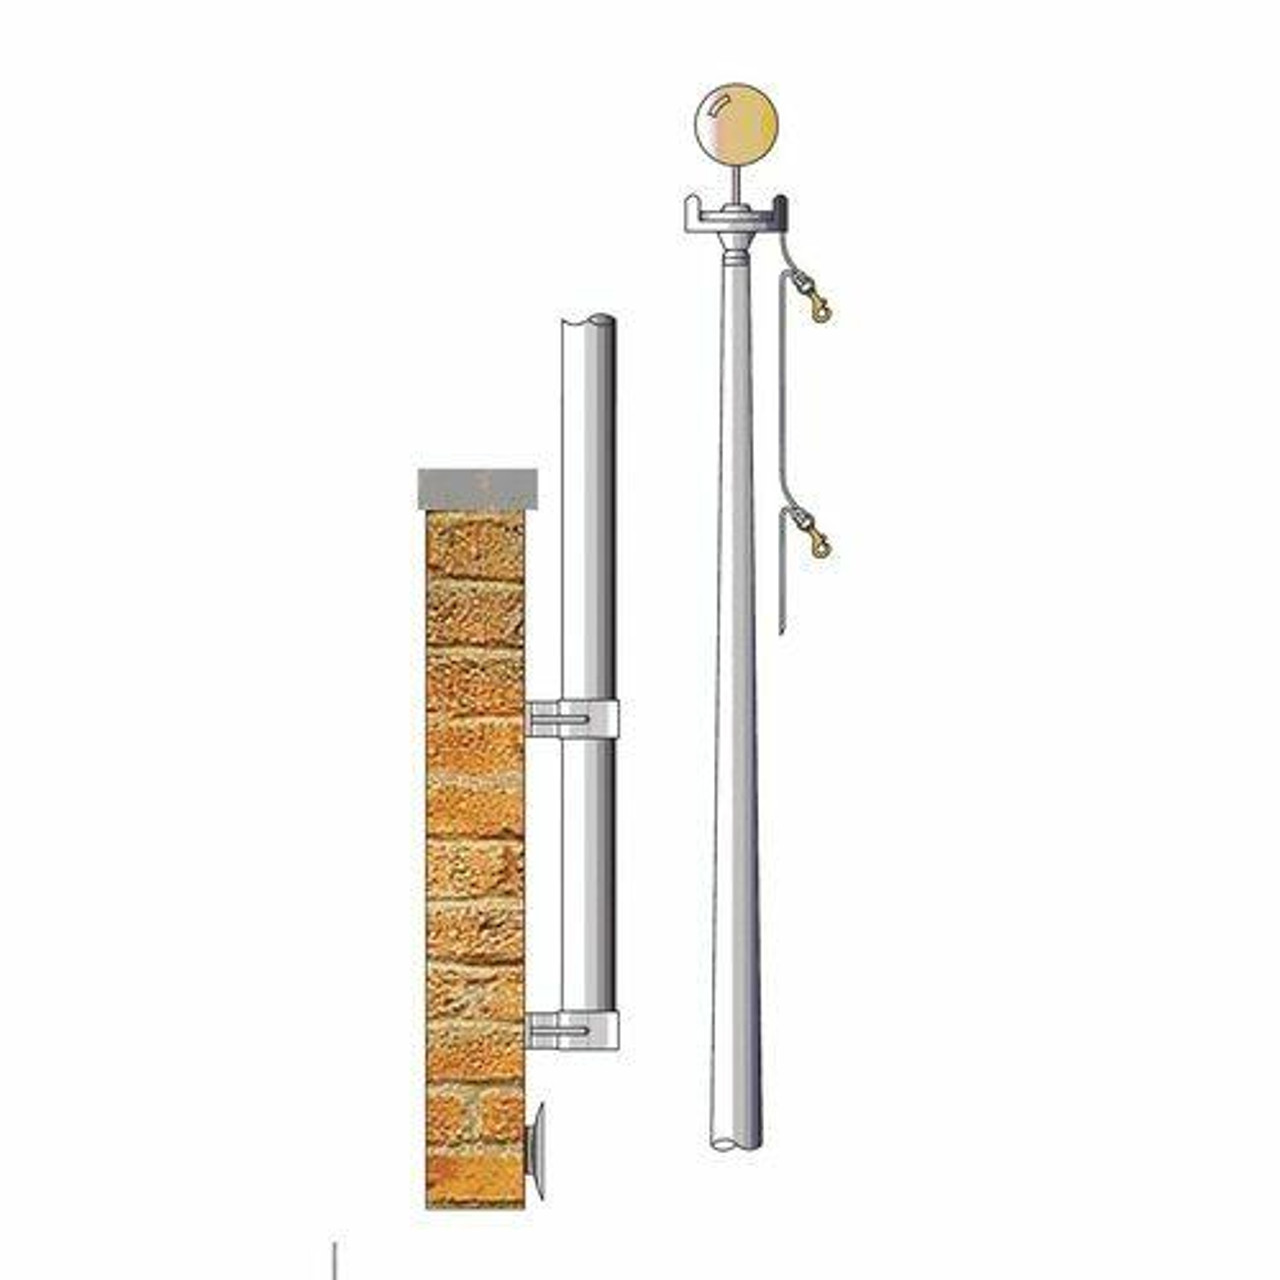 14 Vertical Wall Mounted Flagpole EVWS14